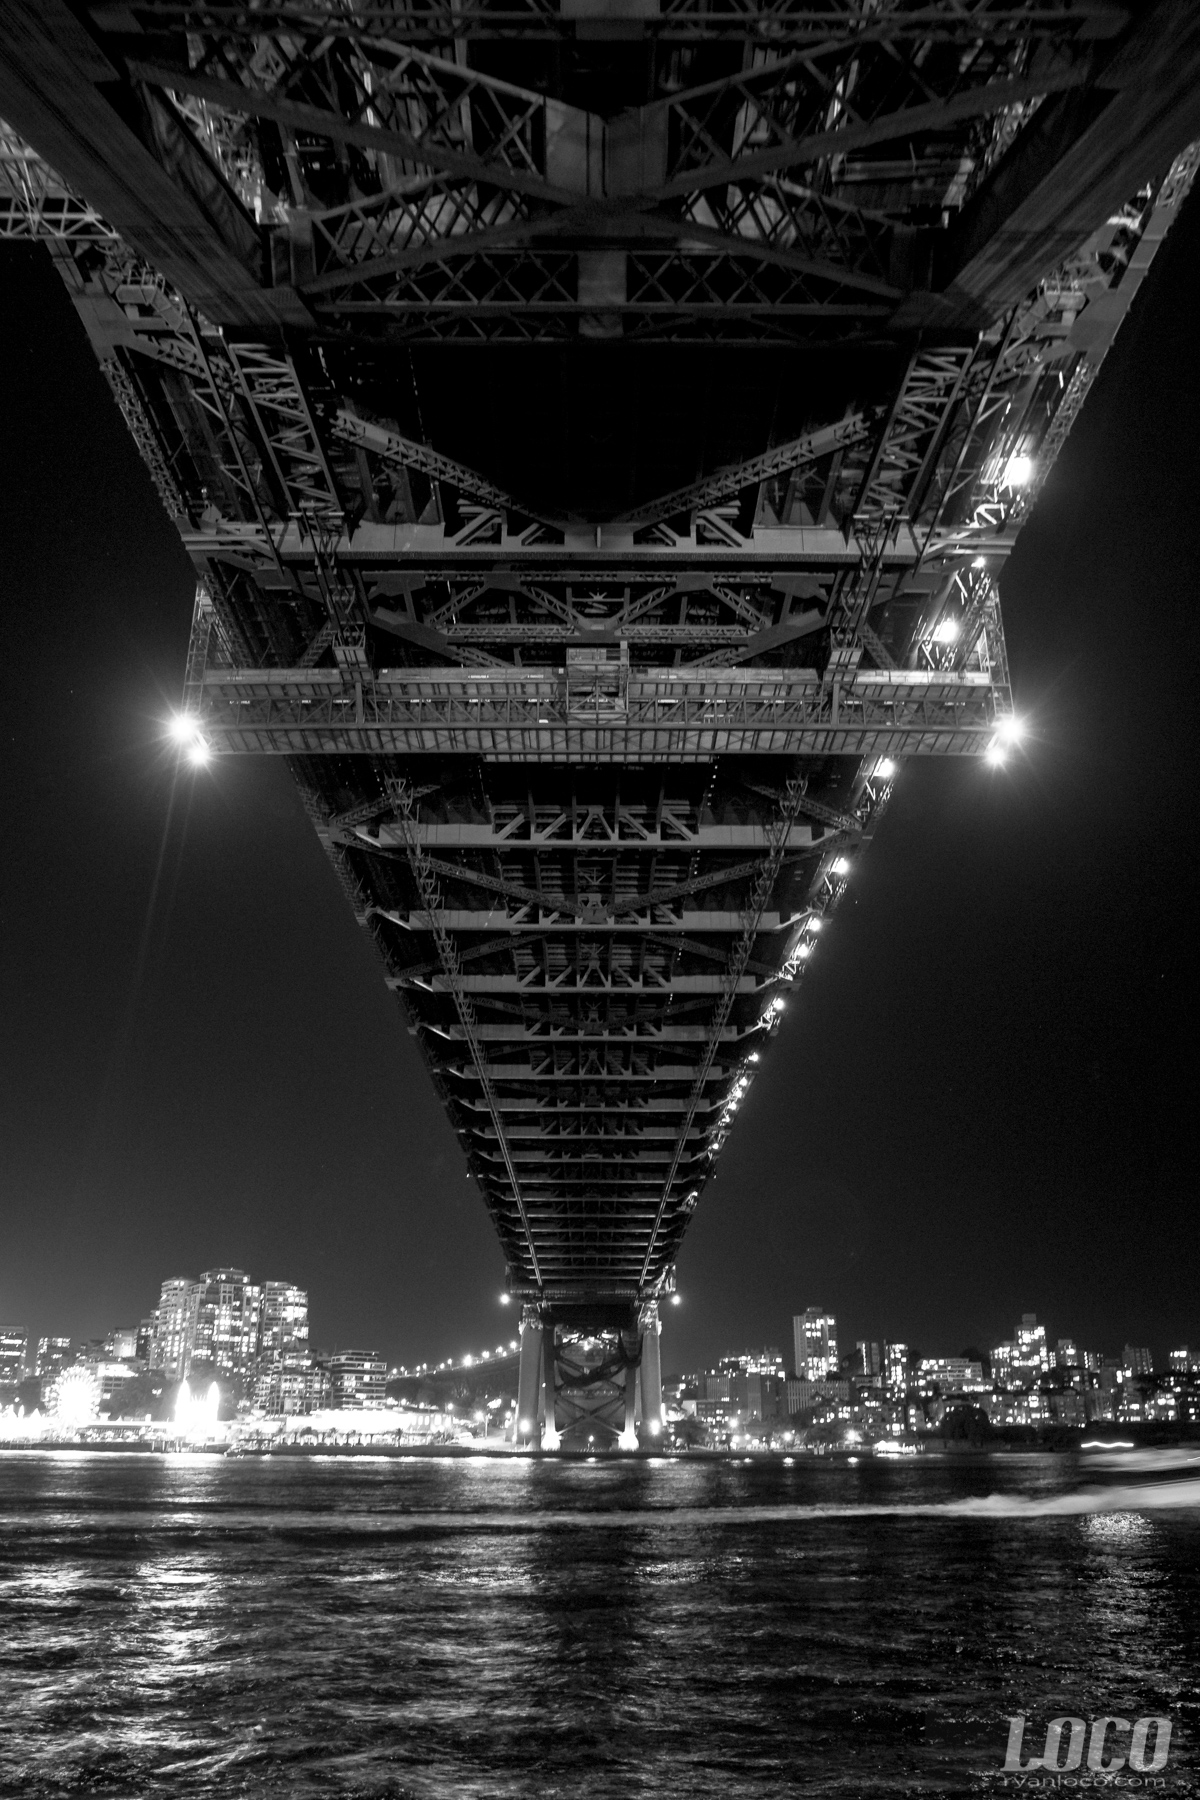 Underneath the Harbour Bridge in Sydney, Australia.